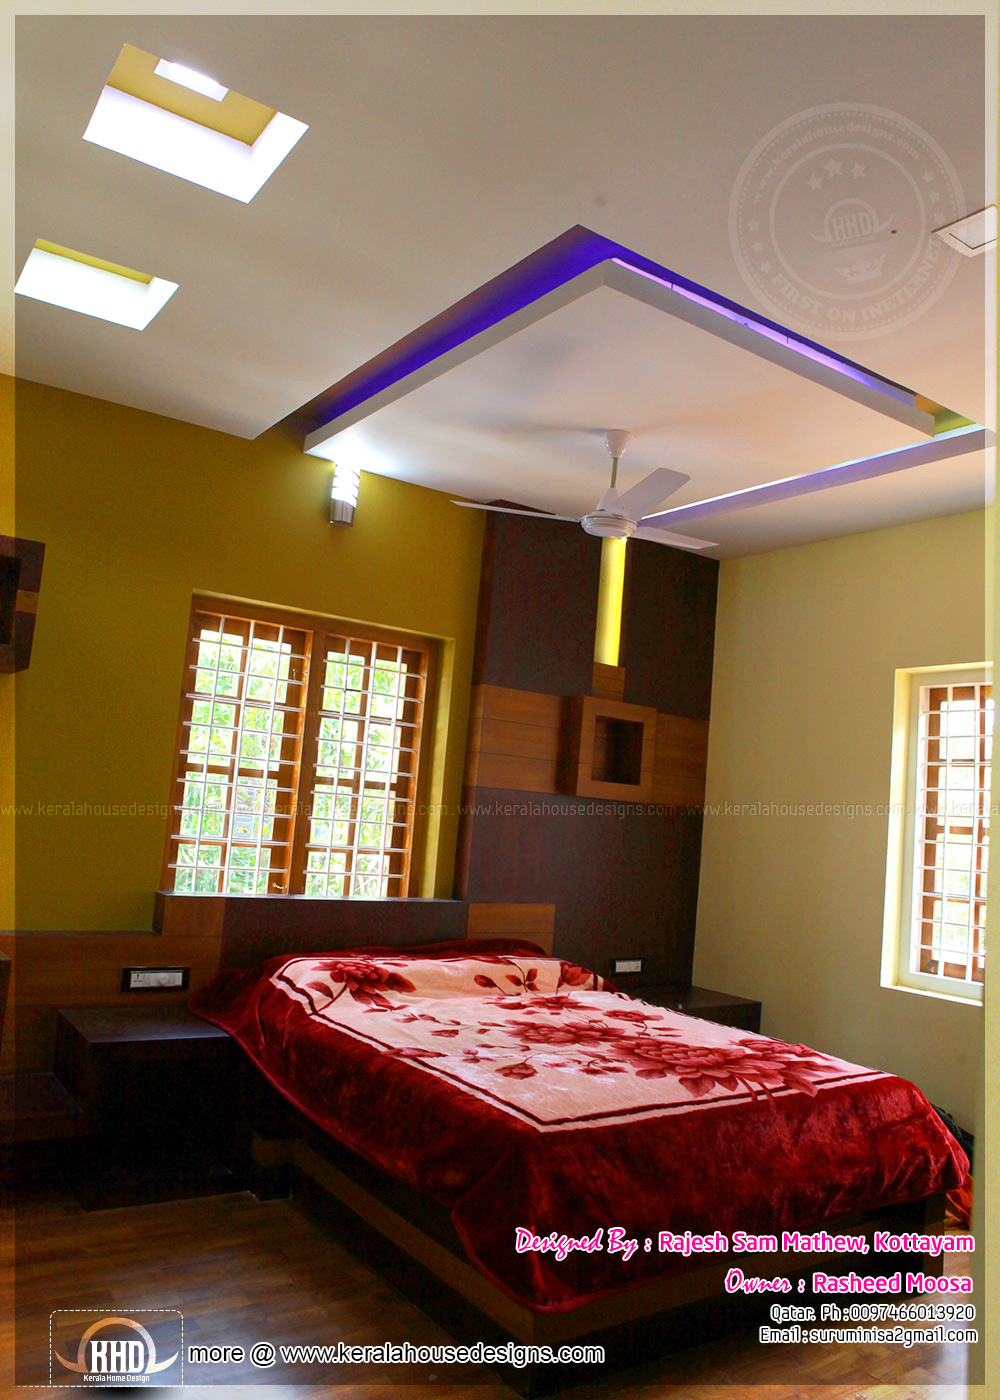 Room Design Interior: Kerala Interior Design With Photos